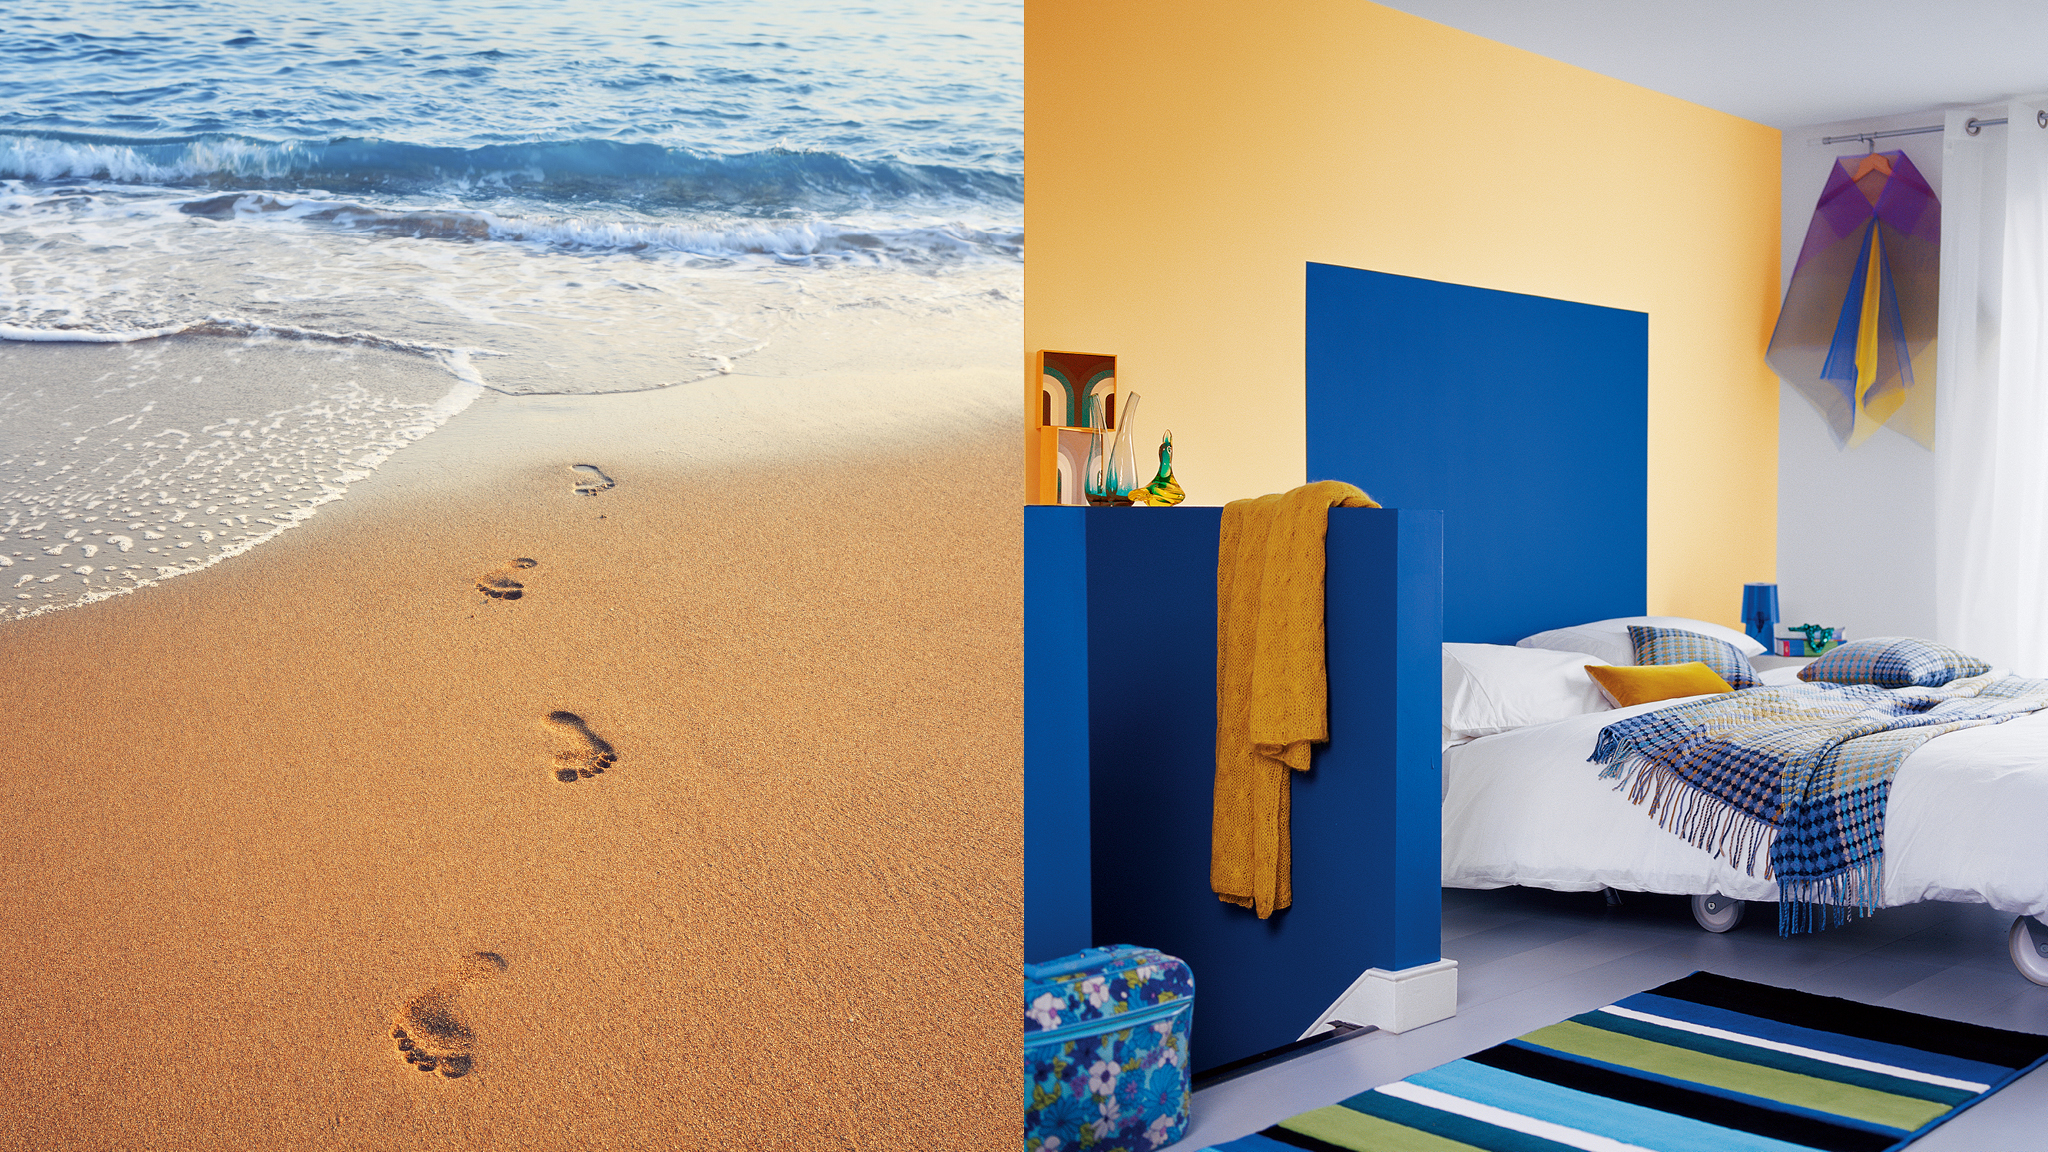 Bring that holiday feeling home with you by painting your walls in cheerful beach-inspired colours.